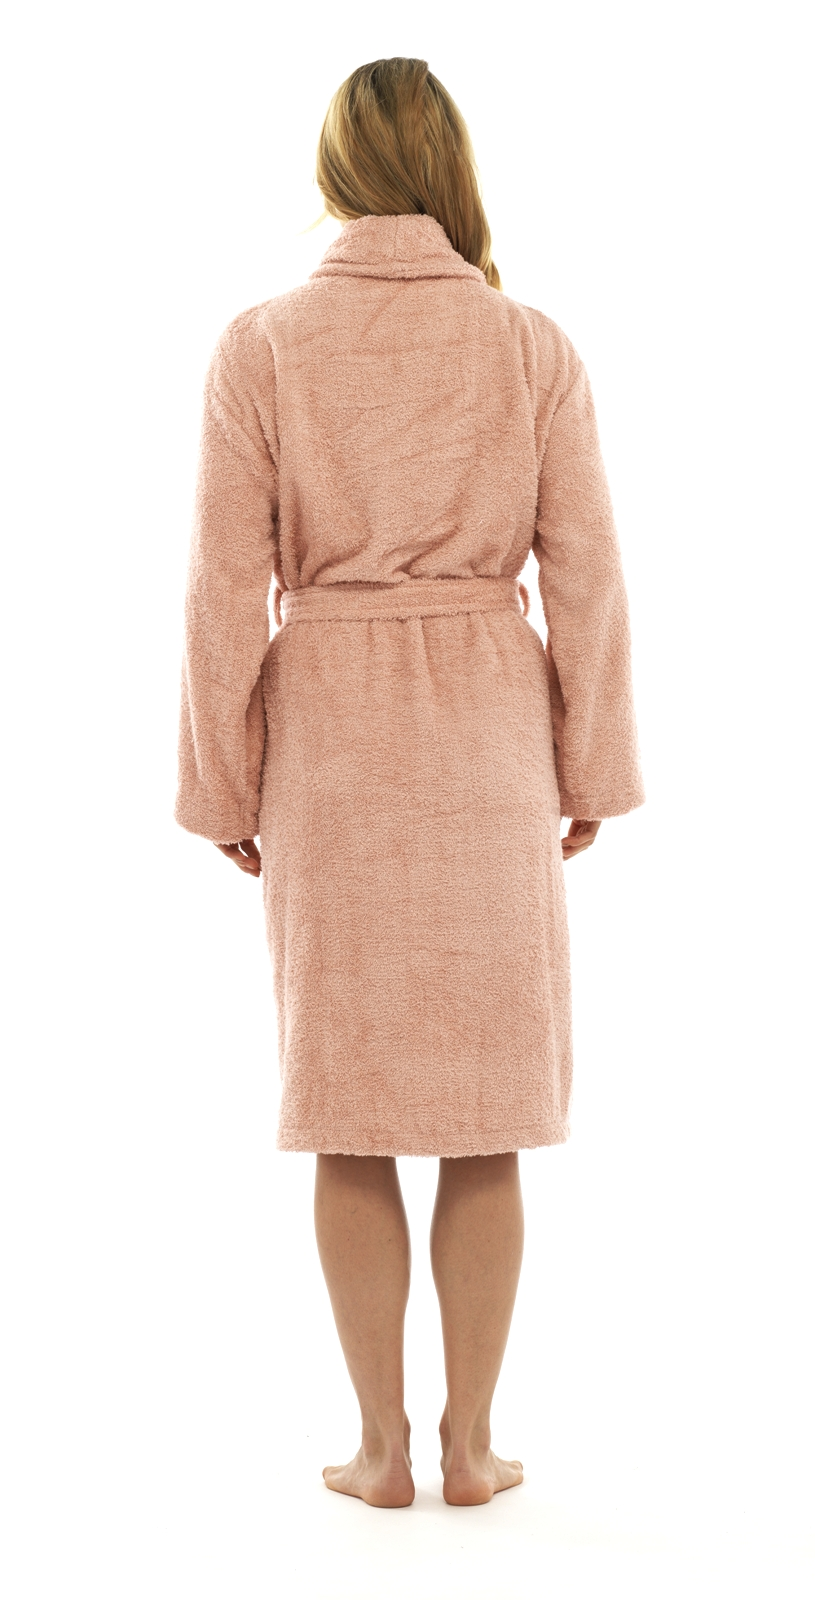 5447ebfc09 Womens Pure 100% Cotton Luxury Towelling Bath Robes Dressing Gowns ...